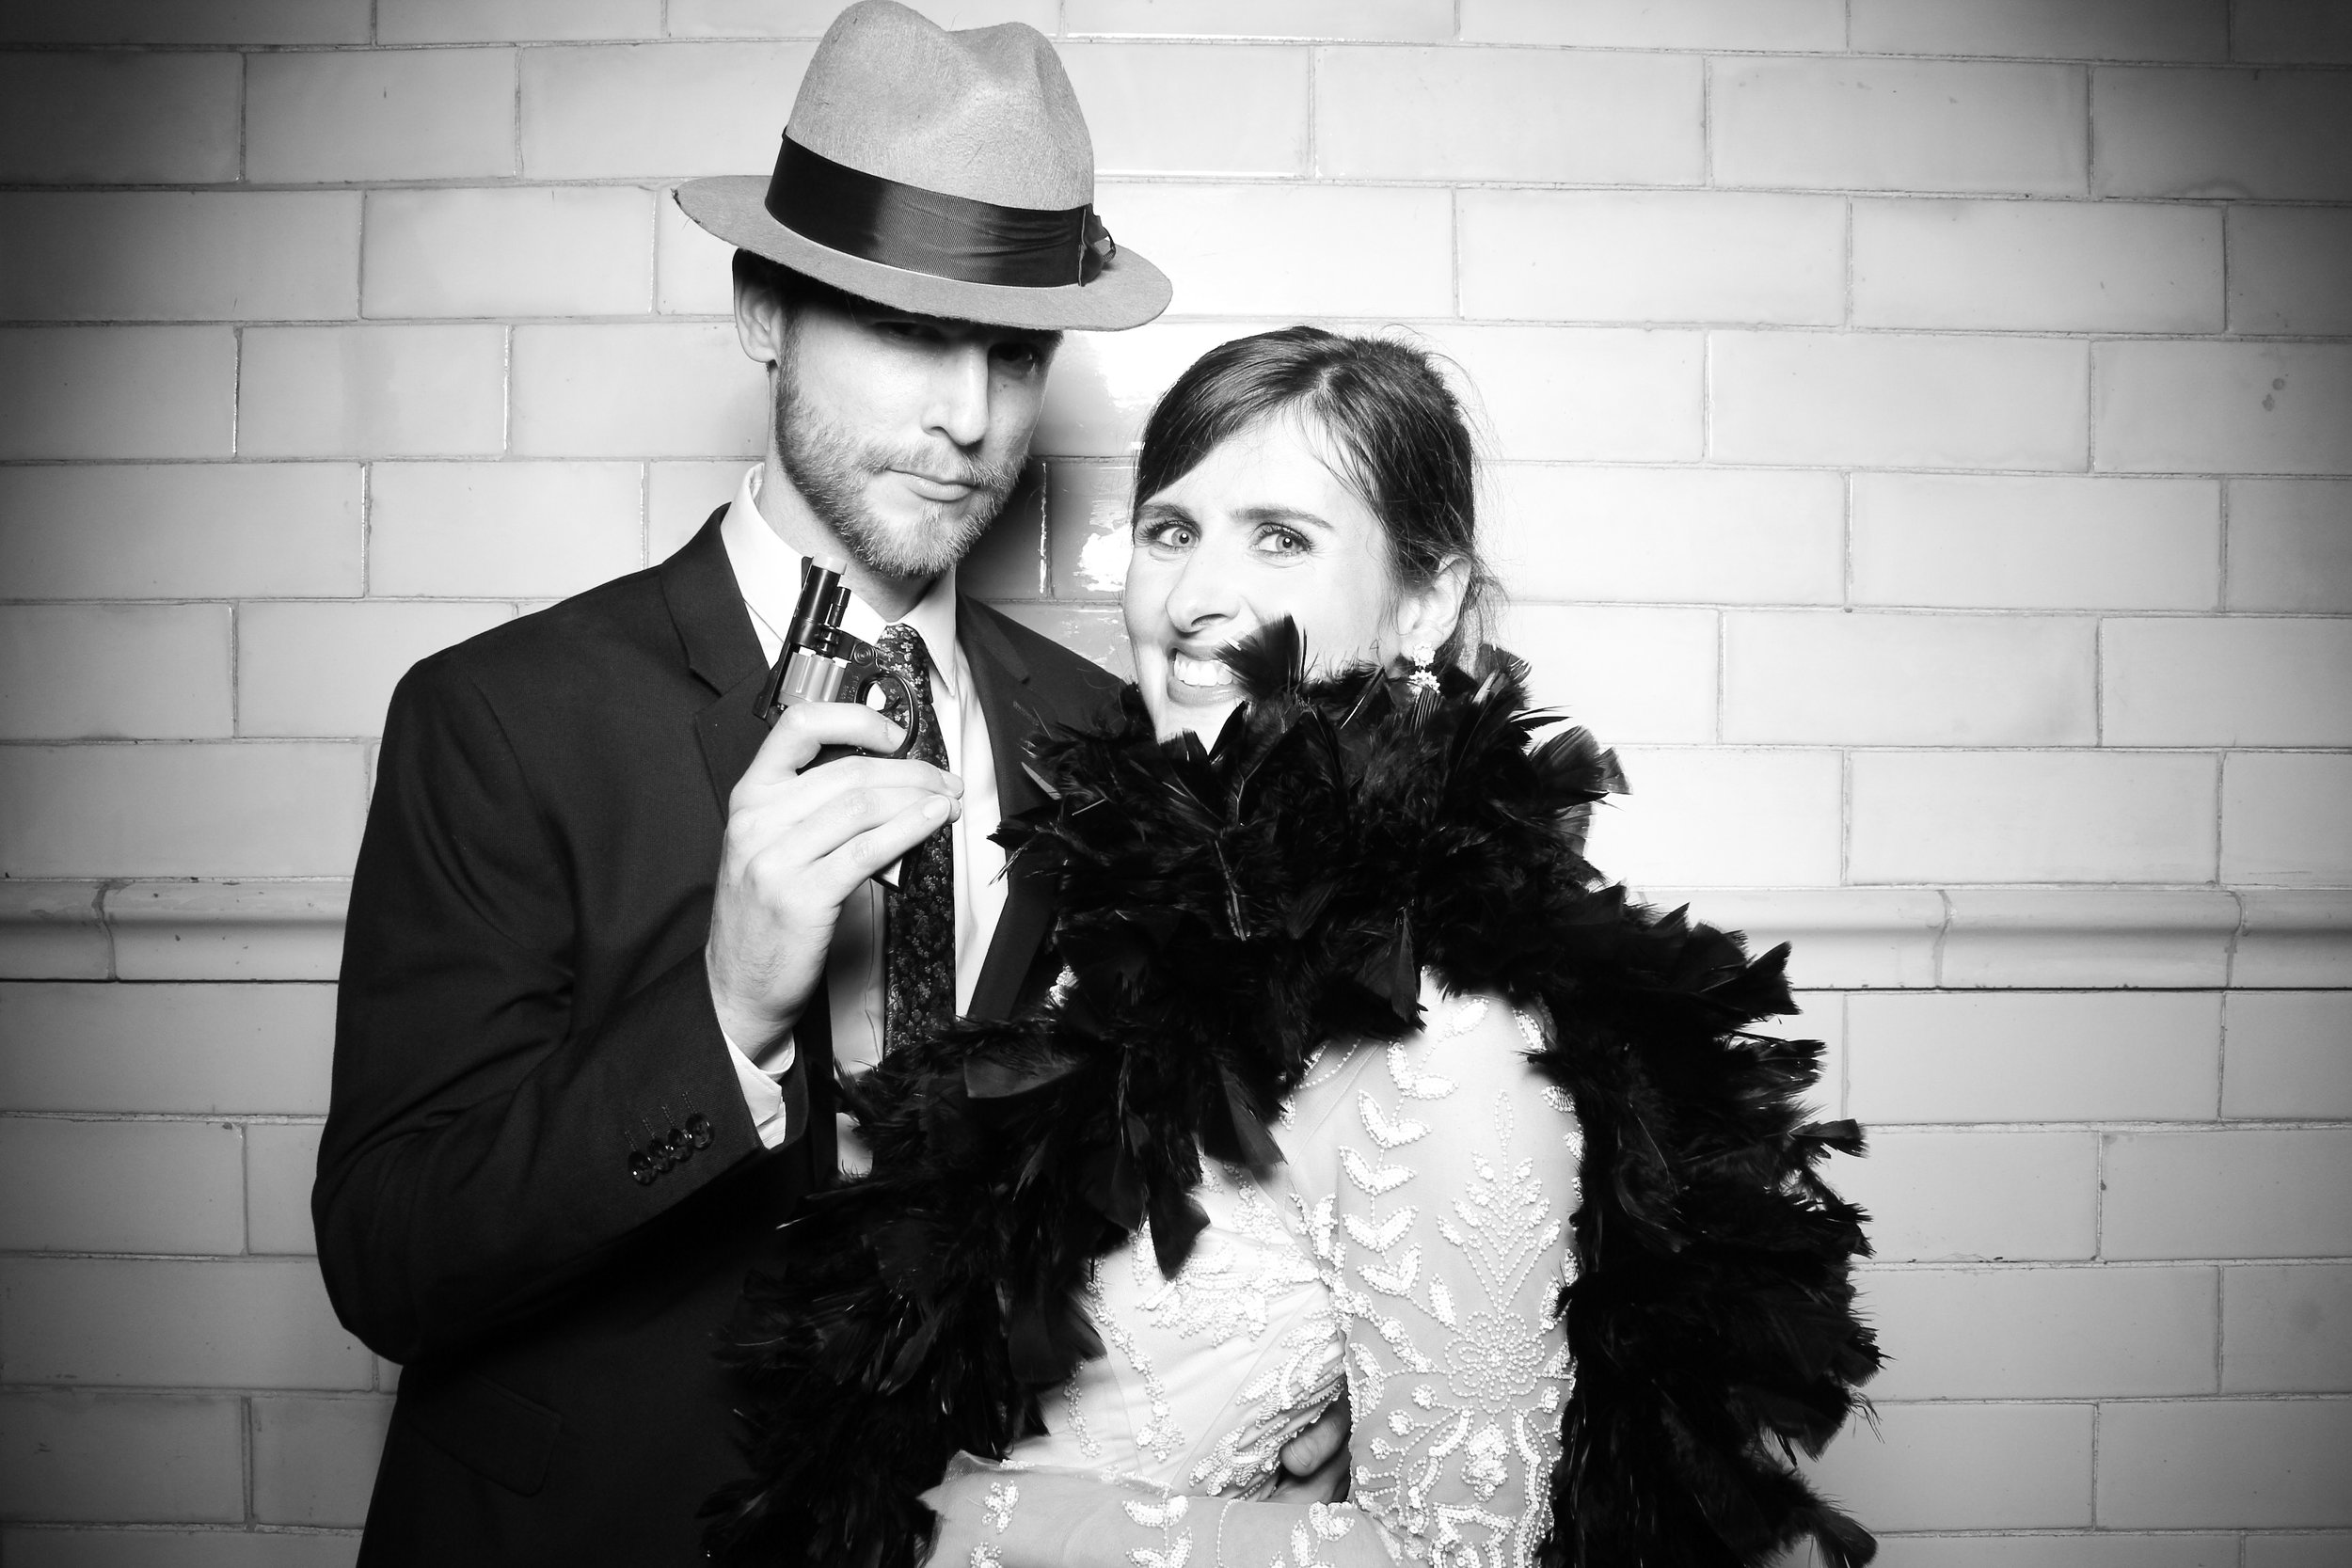 Firehouse_Chicago_Edgewater_Wedding_Reception_Photo_Booth_13.jpg